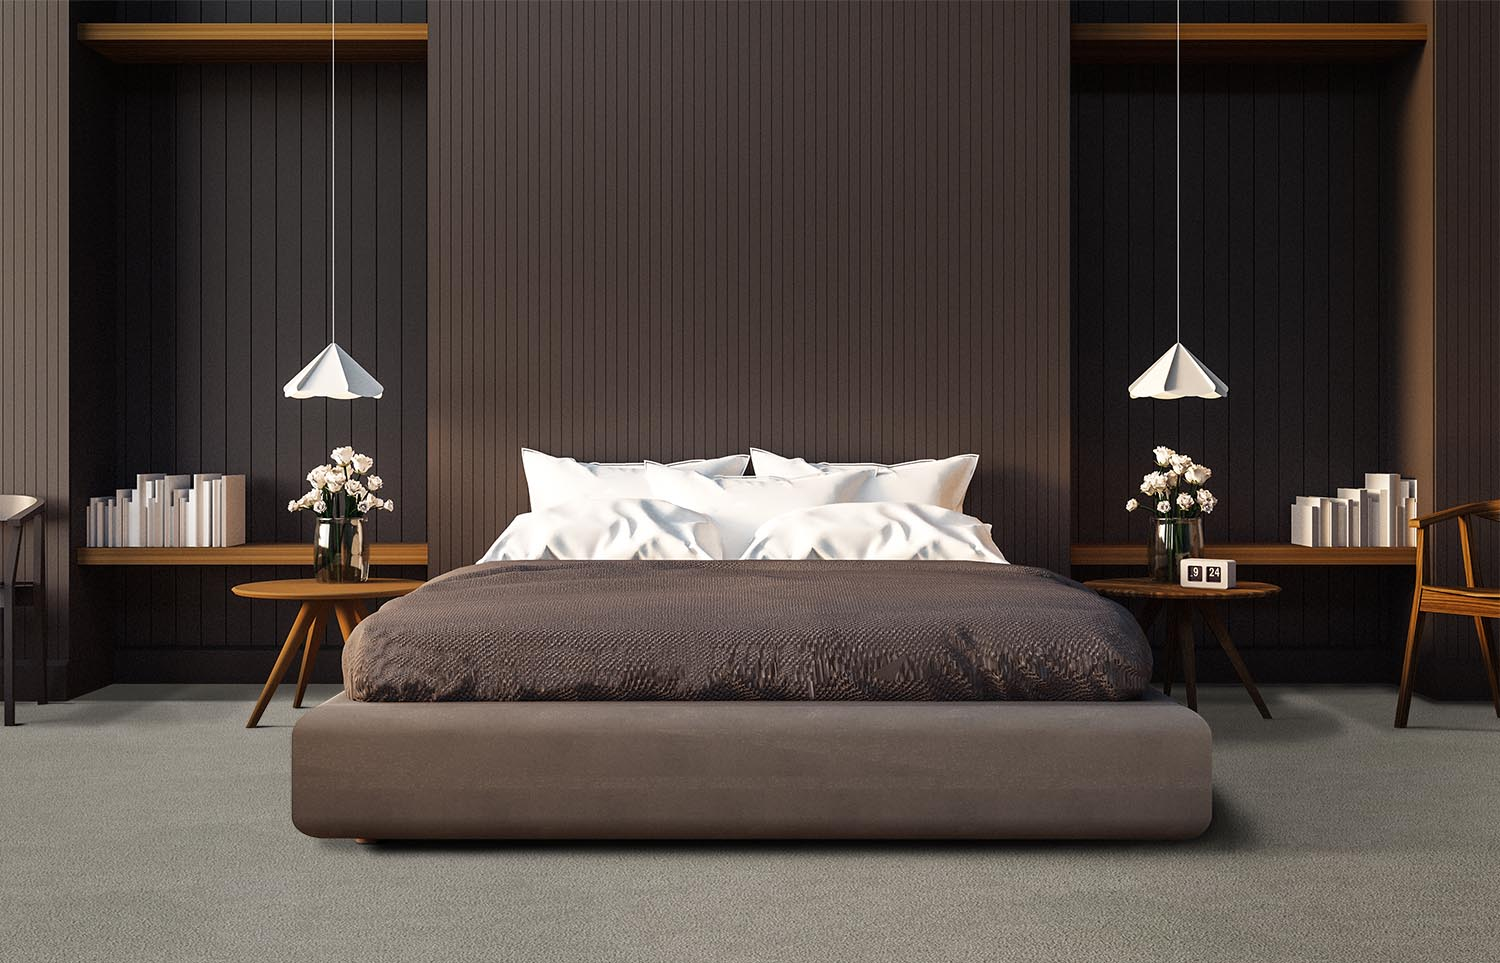 Mantra - M301 - Dusted contemporary bedroom